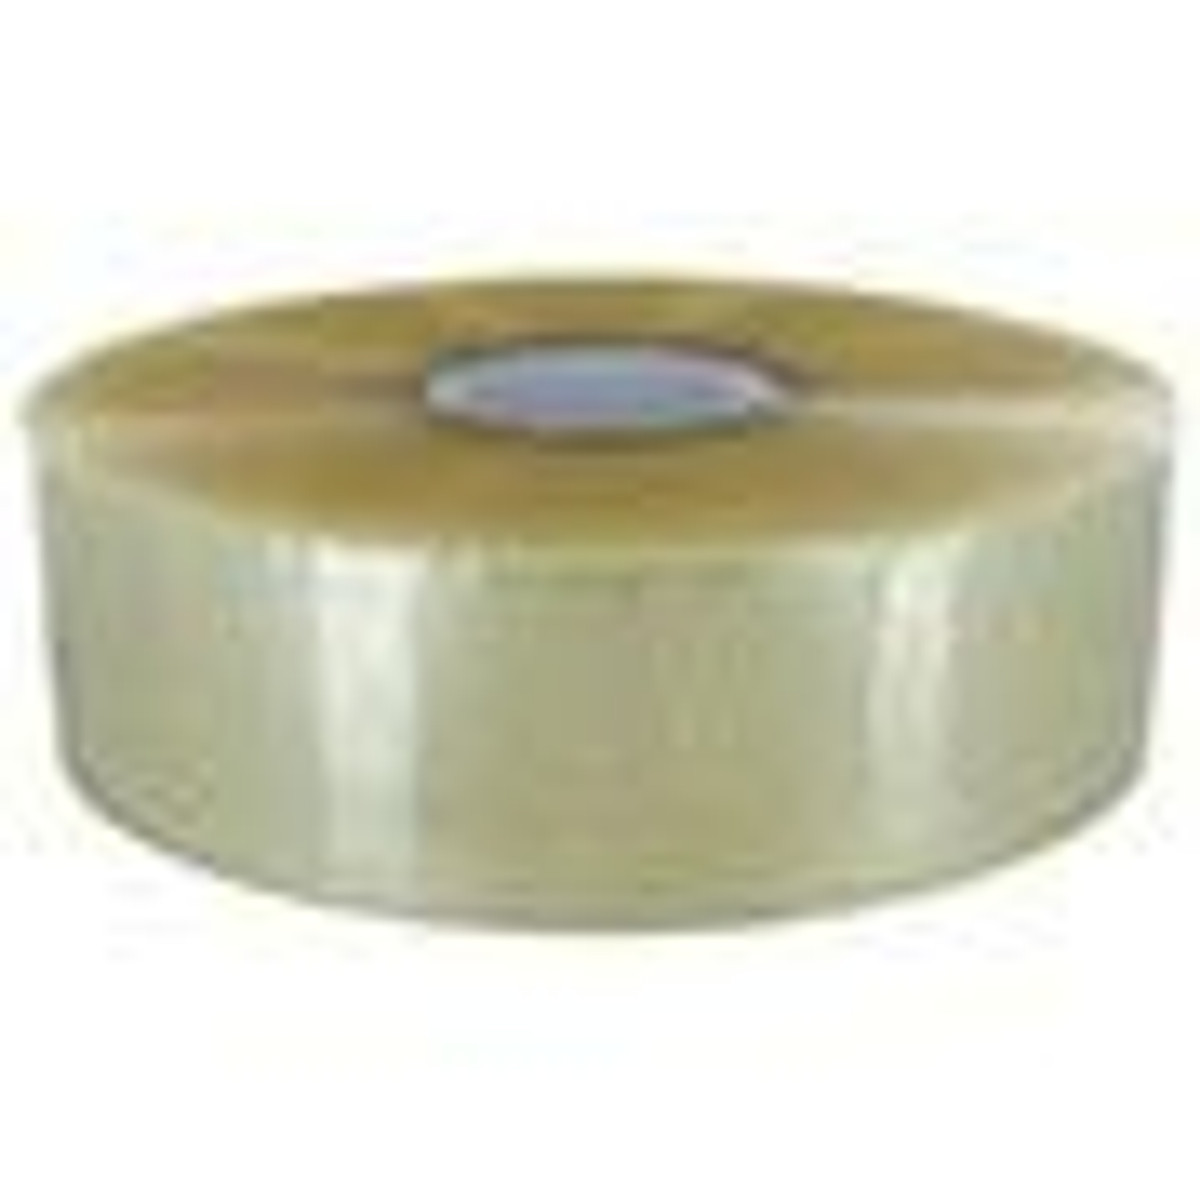 Mailing & Shipping Tape